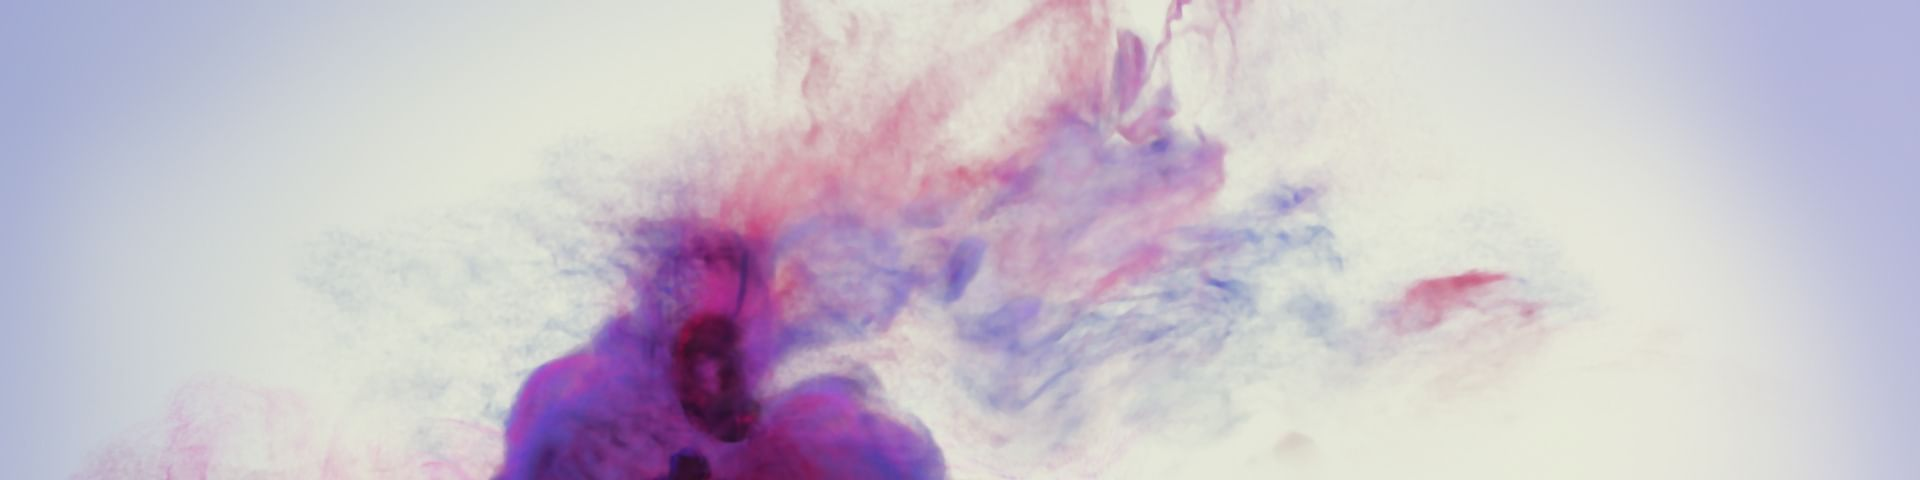 Berlin Live: Blondie